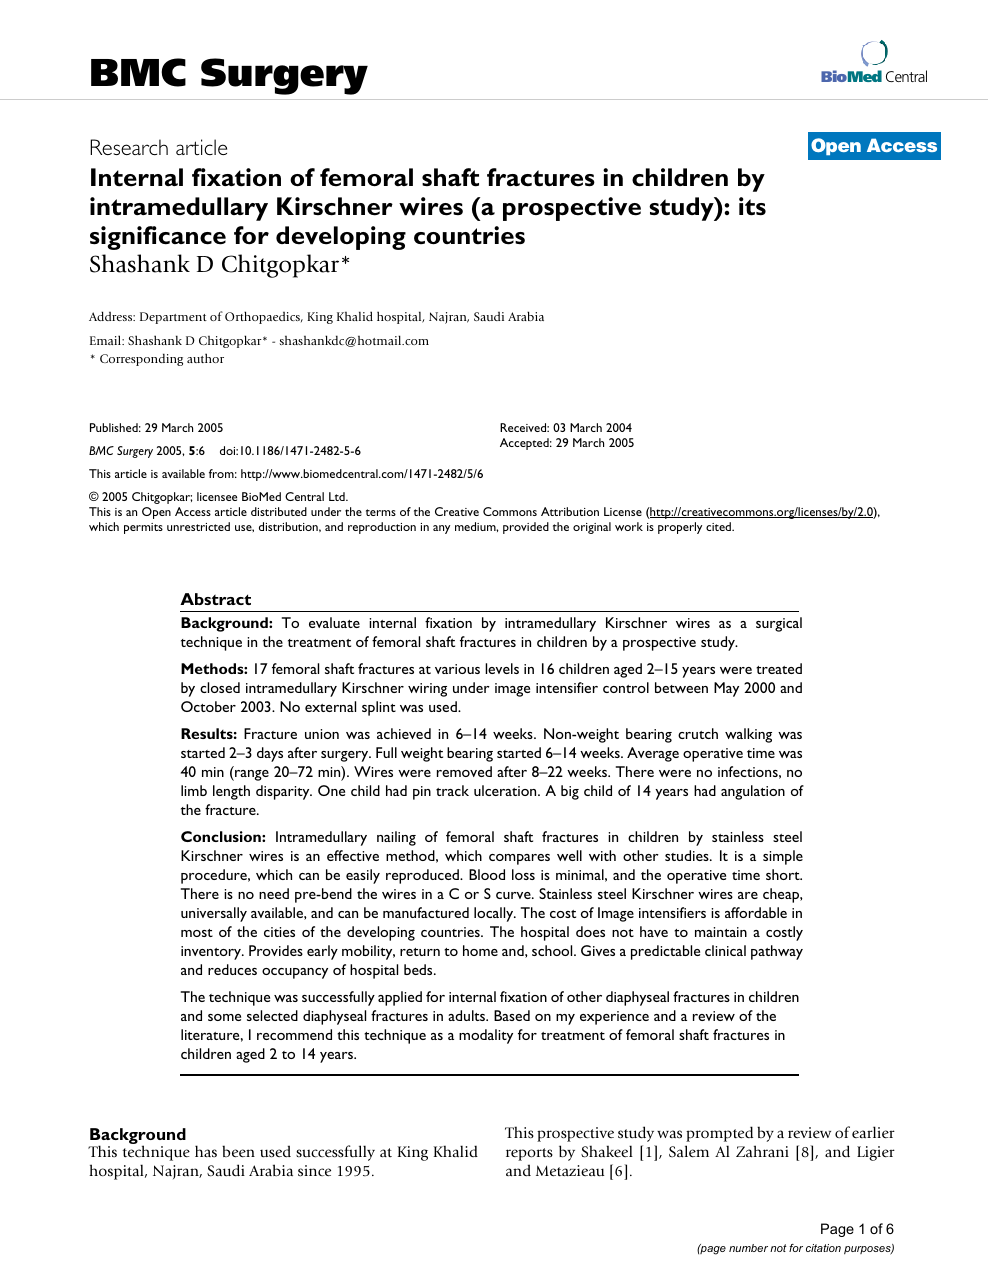 Internal fixation of femoral shaft fractures in children by